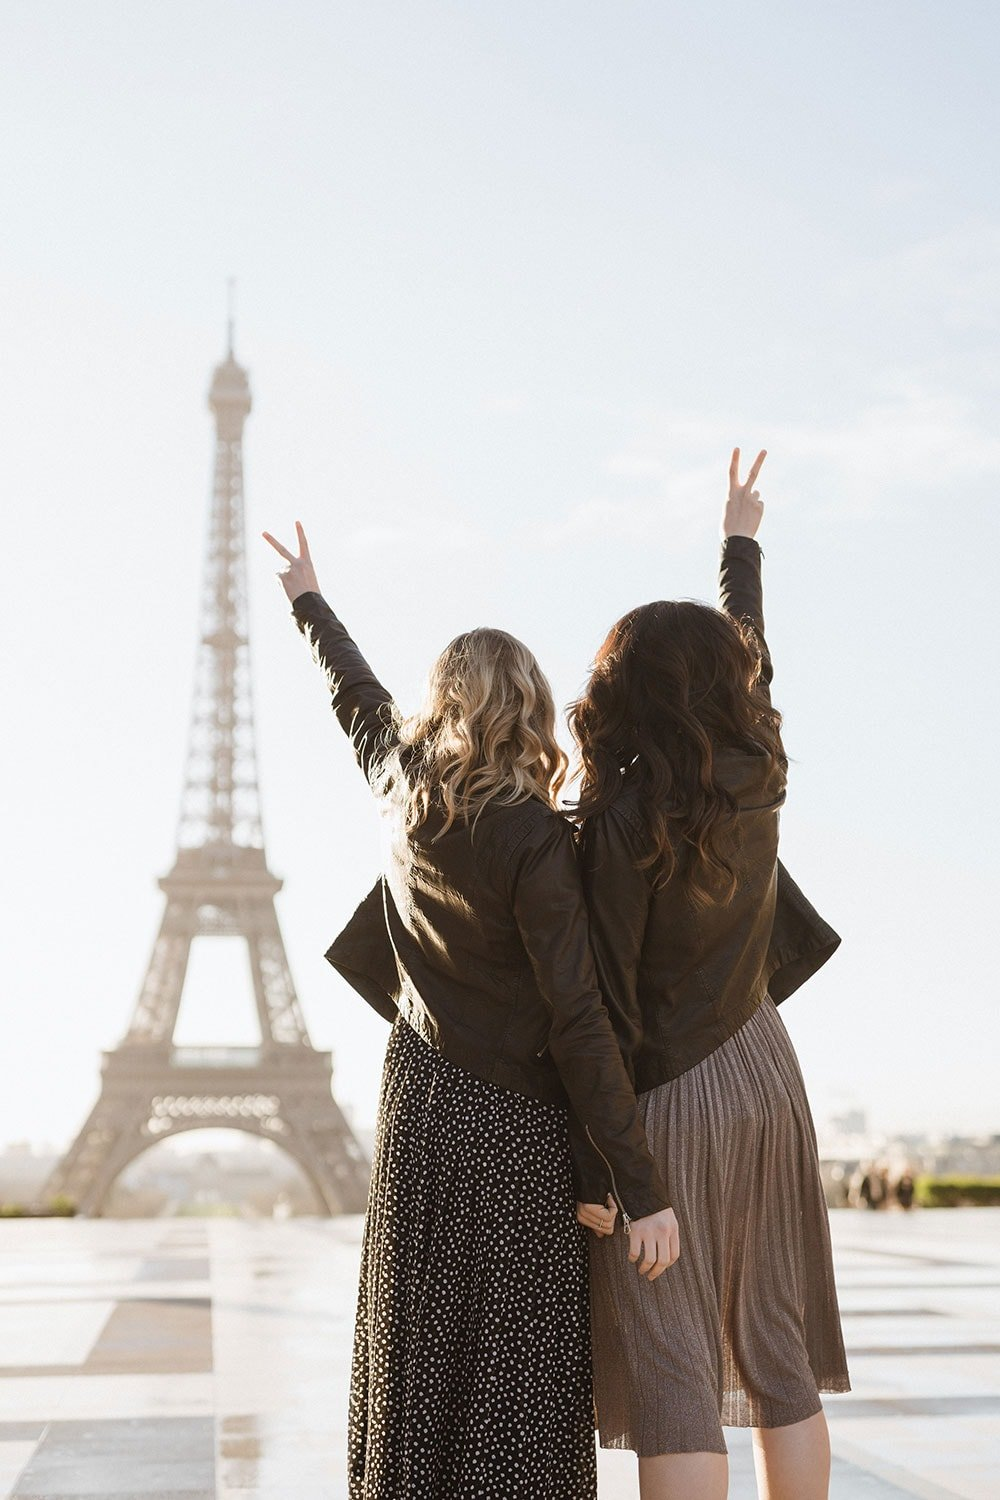 Two girls standing in front of the Eiffel Tower at sunrise